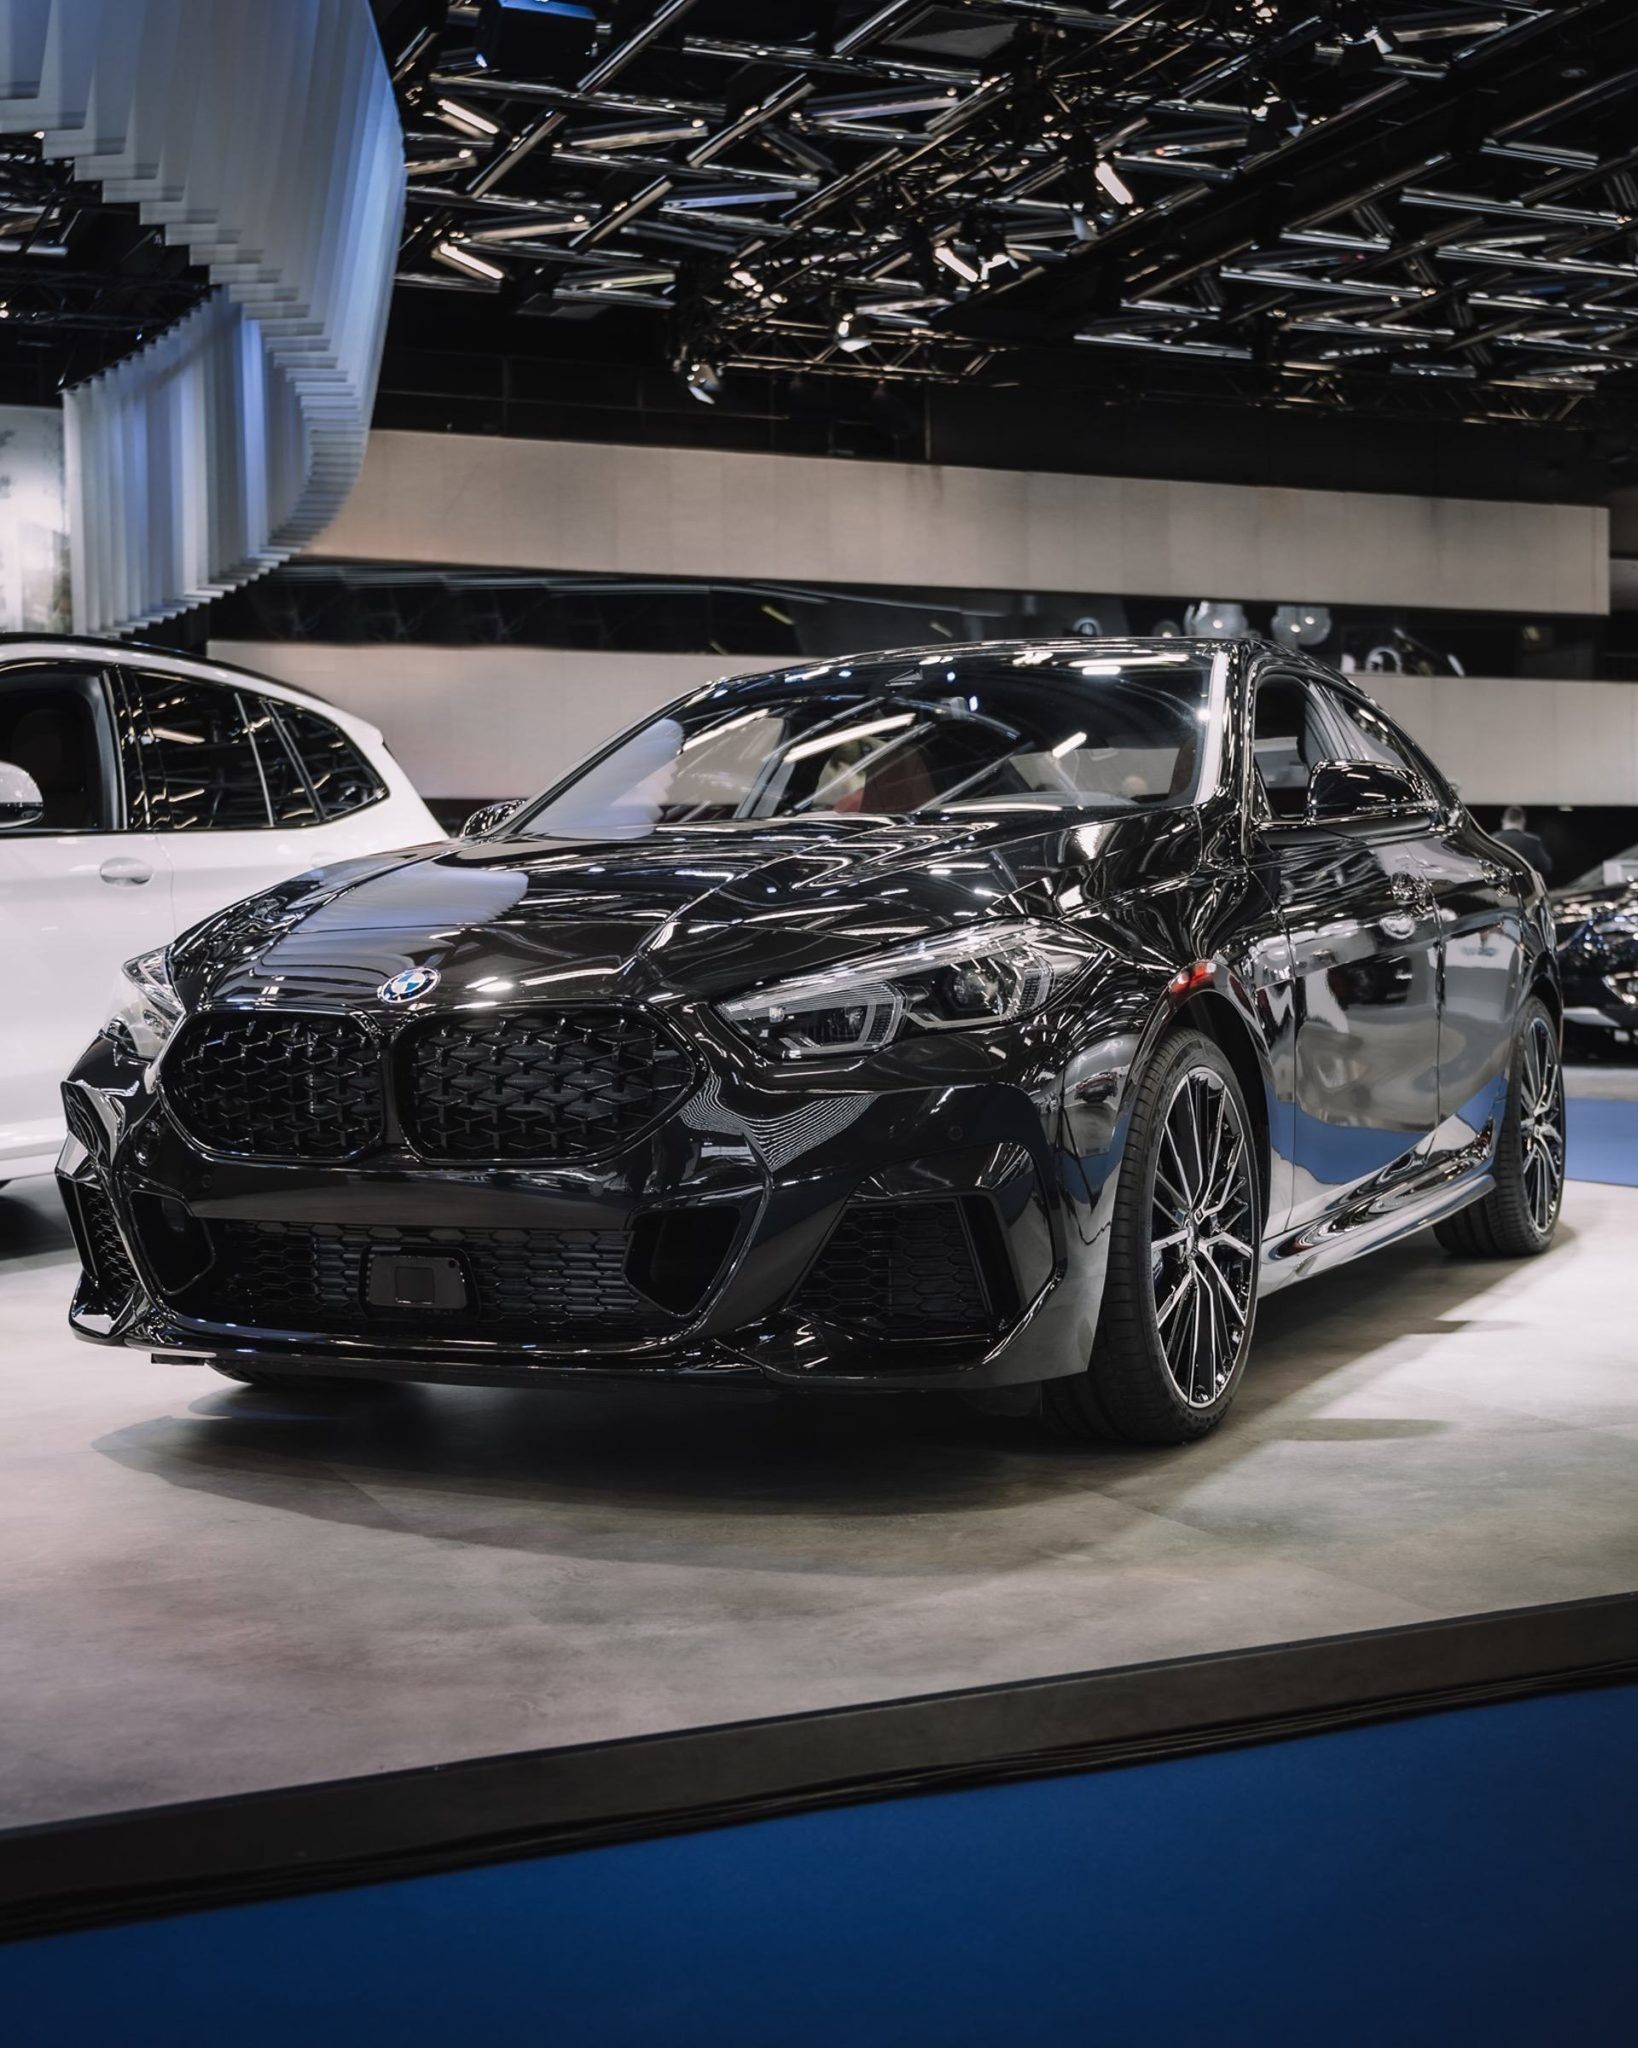 Bmw 2 Series Gran Coupe In Sapphire Black Looks Pretty Good In